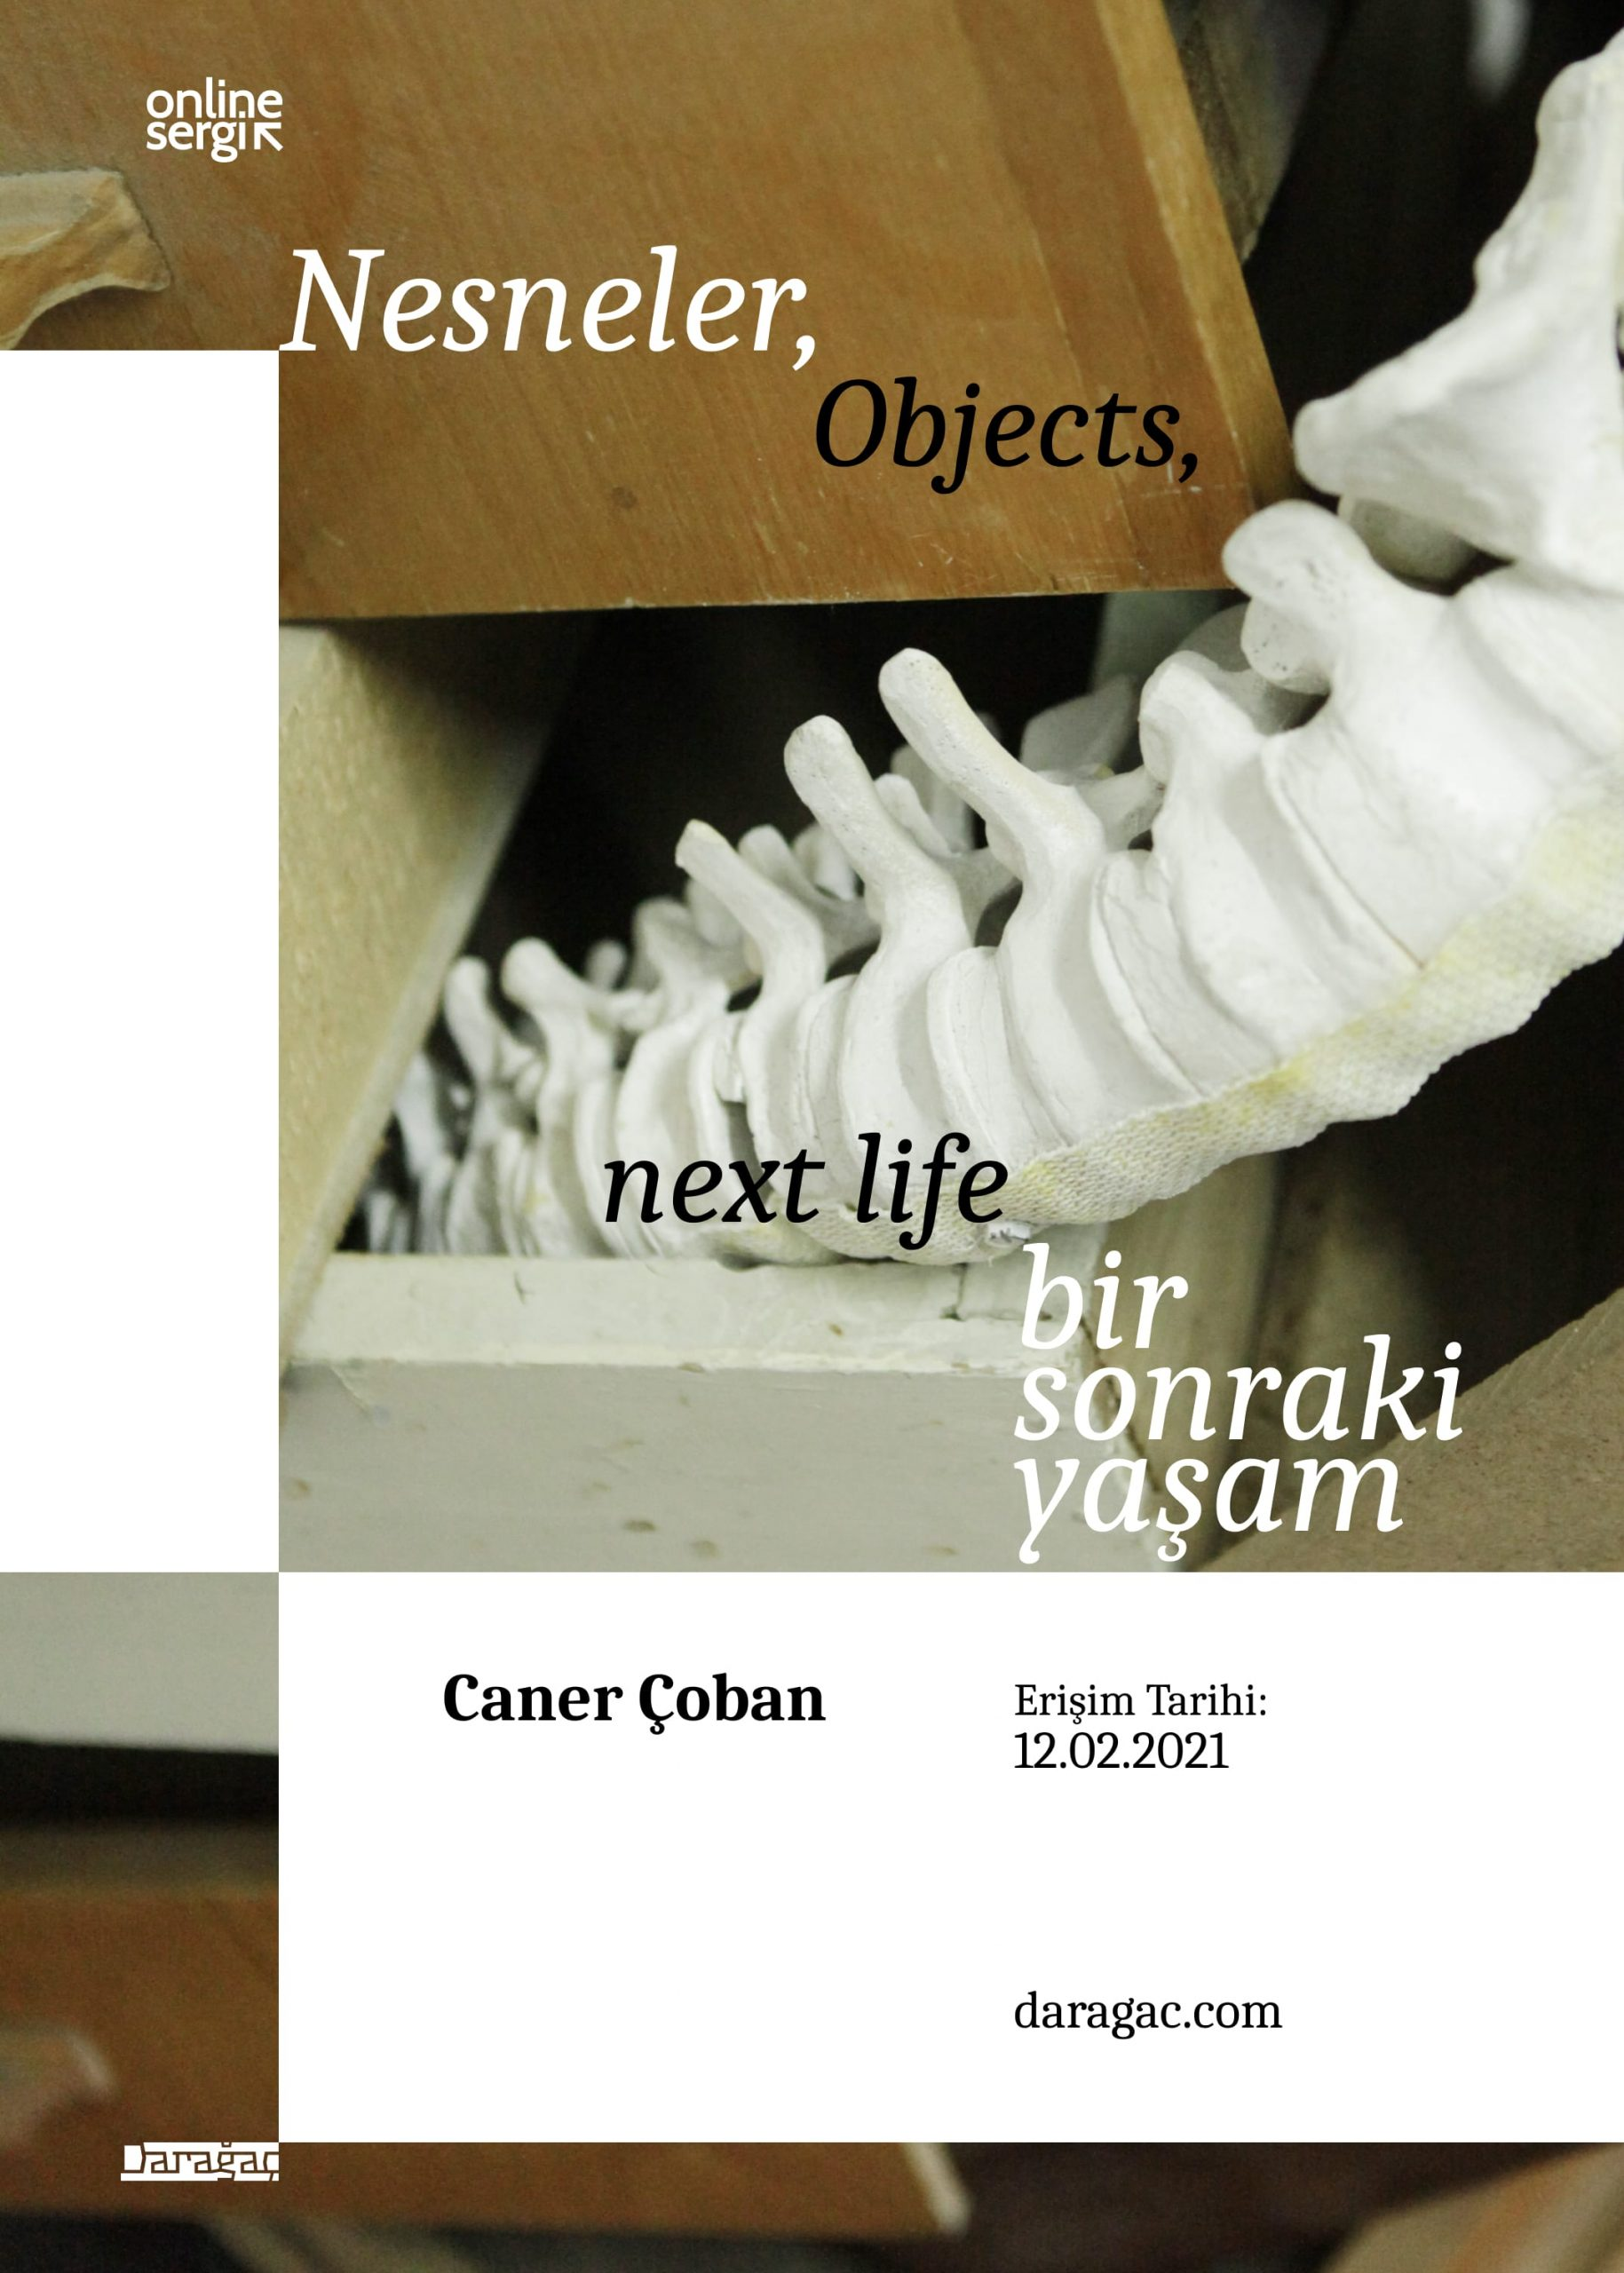 Objects, next life